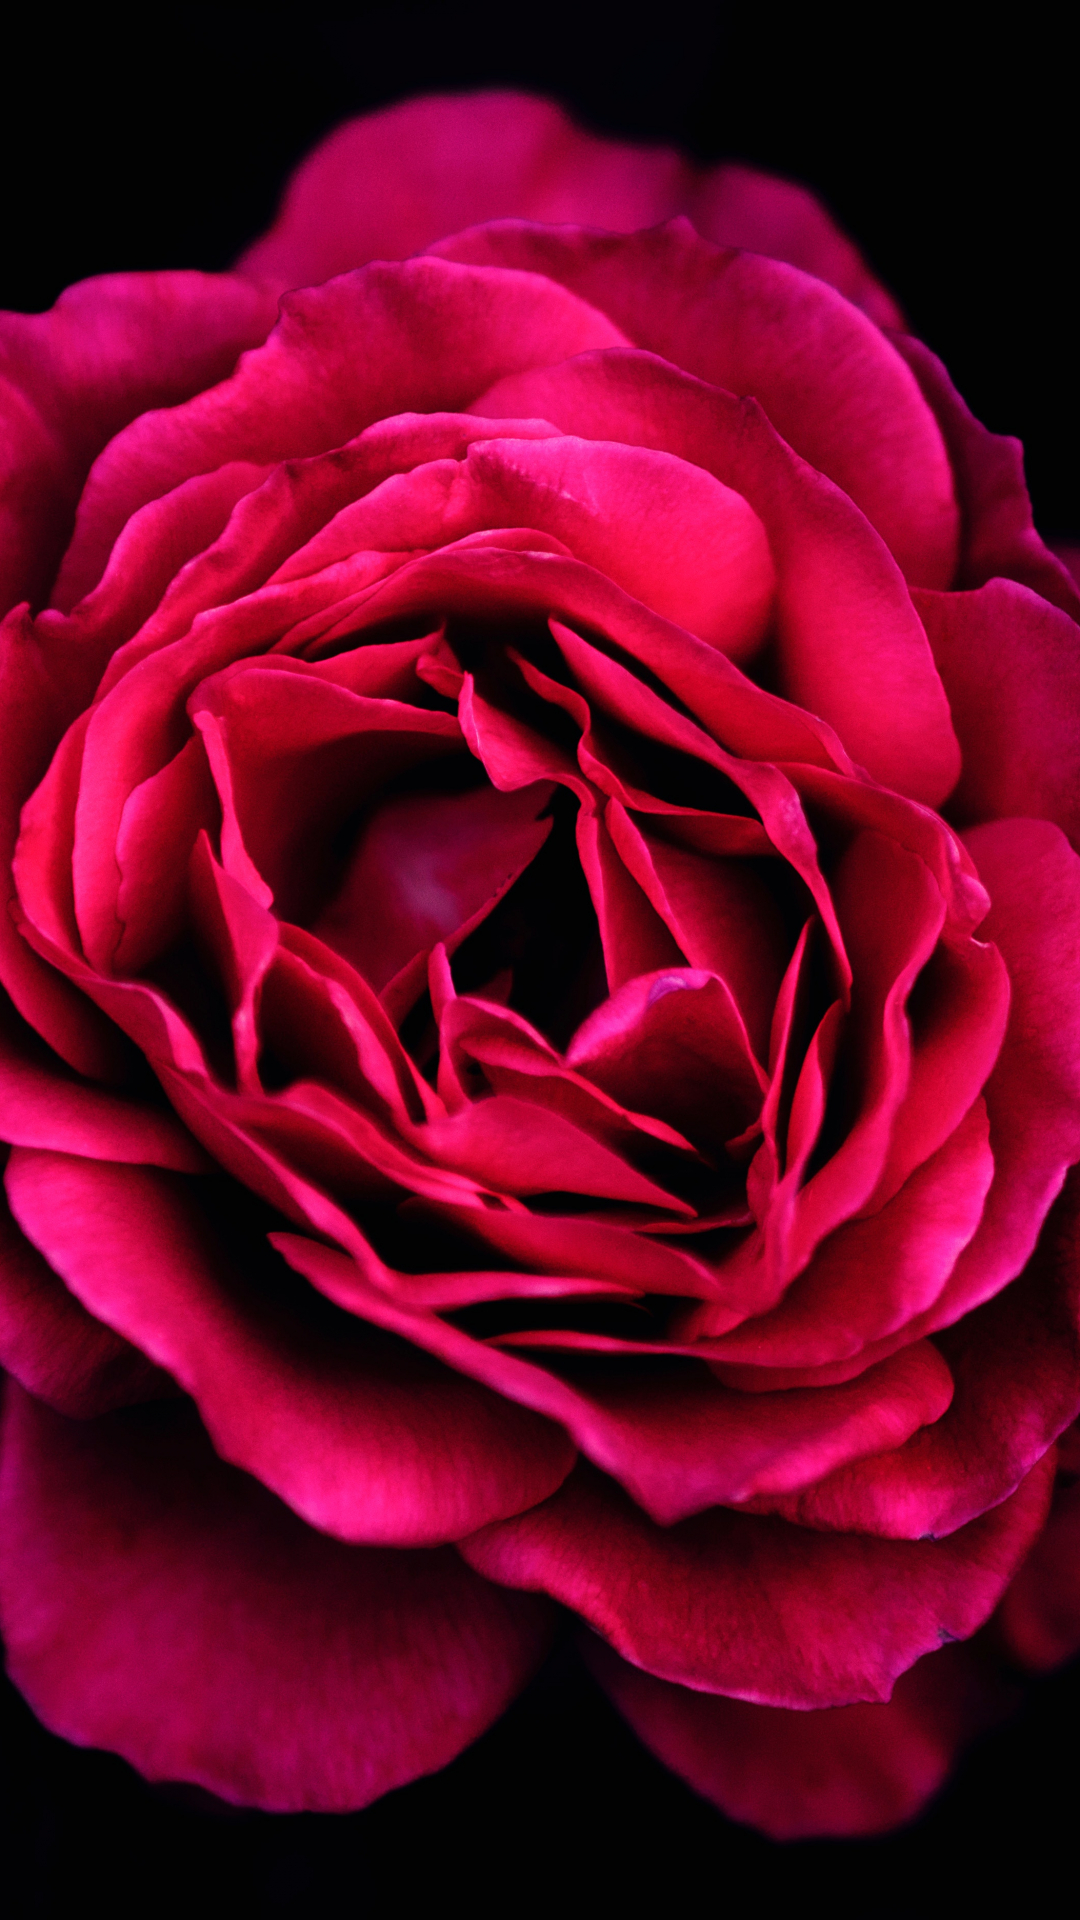 Luxurious Red Rose iPhone Wallpaper